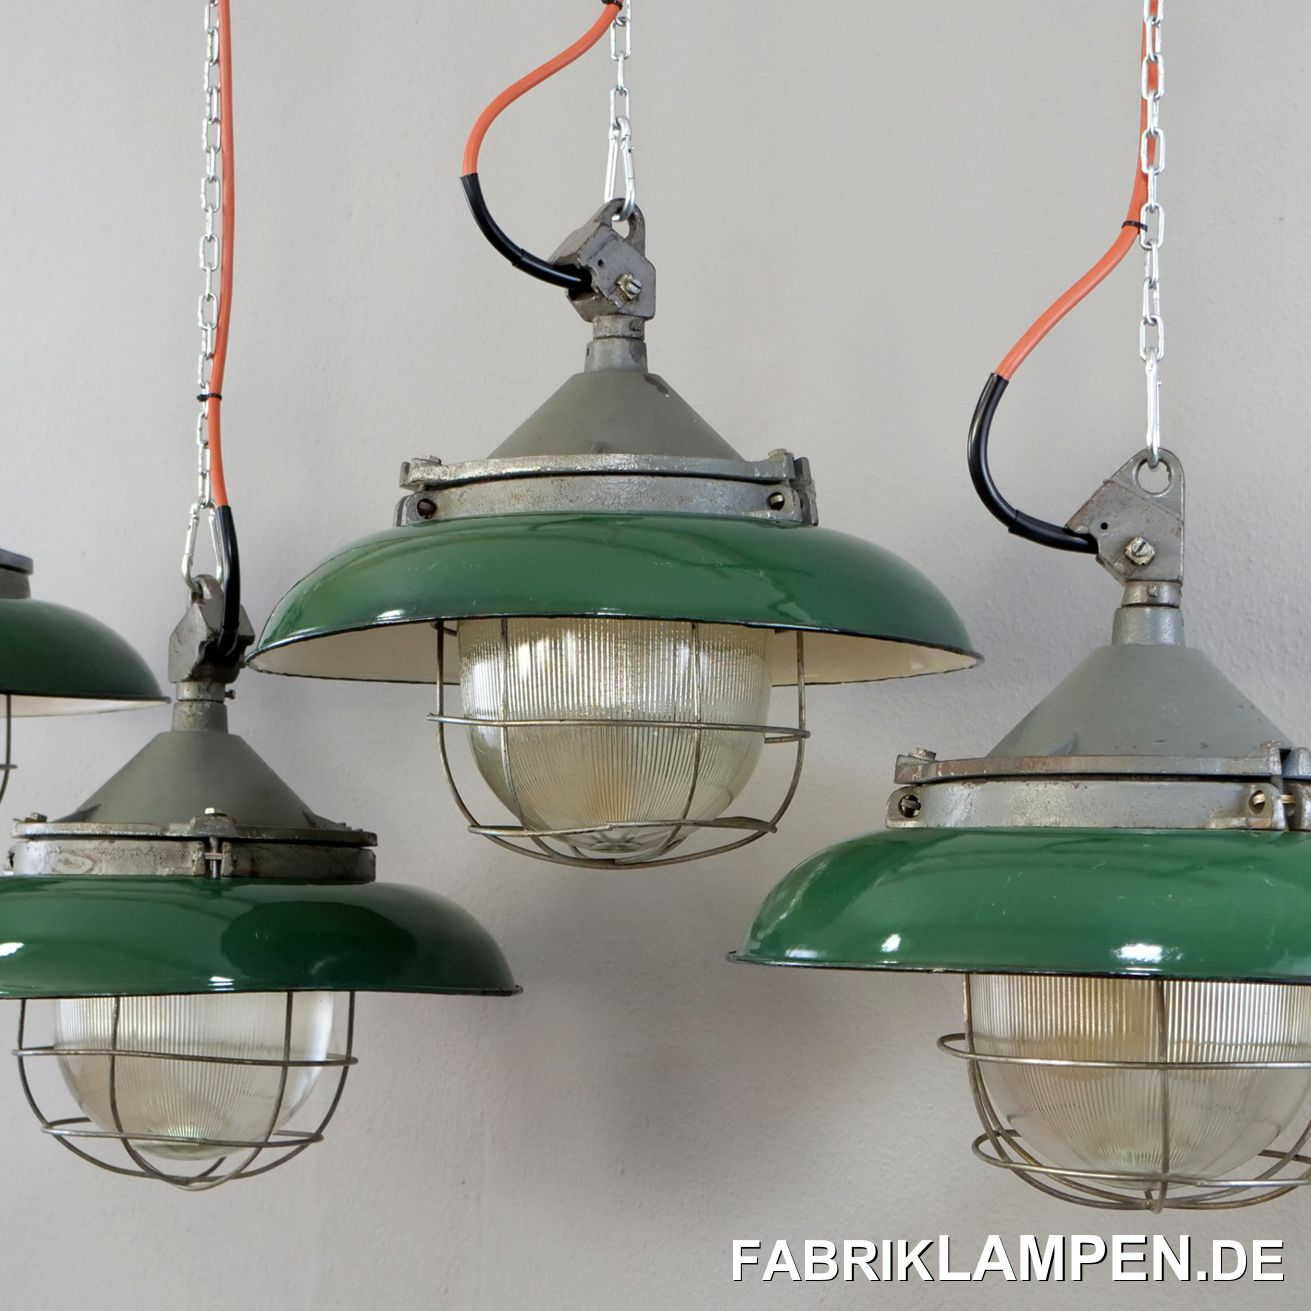 Old green industrial lamp with enamel shade. A classic bunker lamp made with a shade. These lamps exist in two colours: light grey and green. We have both versions in stock. Material: green (inside white) enamelled sheet steel, cast iron housing, protective glass and steel grid. The lamps have the traces of the past decades (discolourations, small chips, rust spots and so on - we have treated them all). The headboards have been refurbished. The old industrial lamps have been restored: cleaned and conserved. The factory lamps are newly electrified, with new E27 ceramic sockets, the complete interior is new.Your old industrial lamp will be delivered with 2 metres of cable (other lengths are of course possible) and with the original, massive suspension eye for safe hanging. For an extra charge, the factory lamps can also be supplied with chain suspension. We can also offer canopies.Old green industrial lamp, the dimensions: Diameter lamp (shade) 41 cm, height 30 cm.